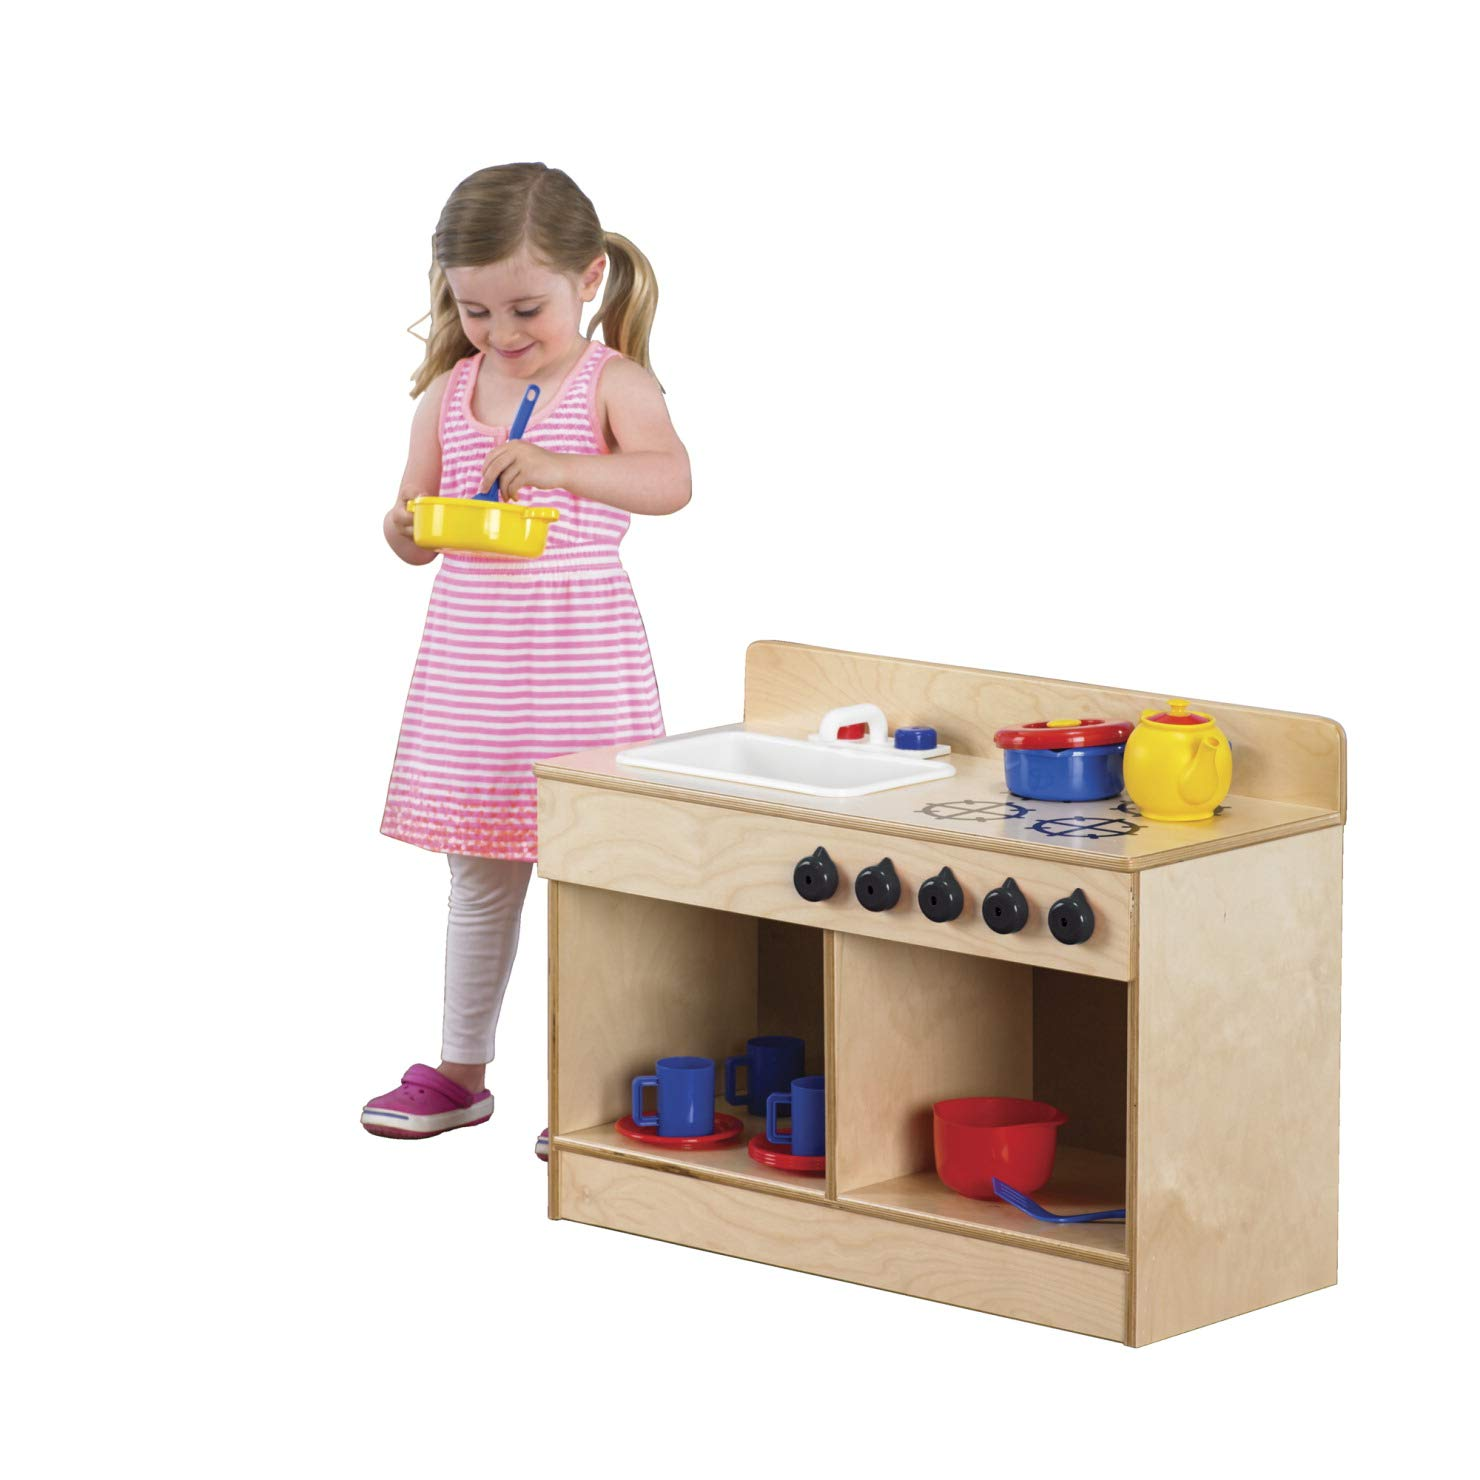 Childcraft 1491196 Toddler Sink and Stove Combo, 21.5'' Height, 13.38'' Width, 29.5'' Length, Natural Wood